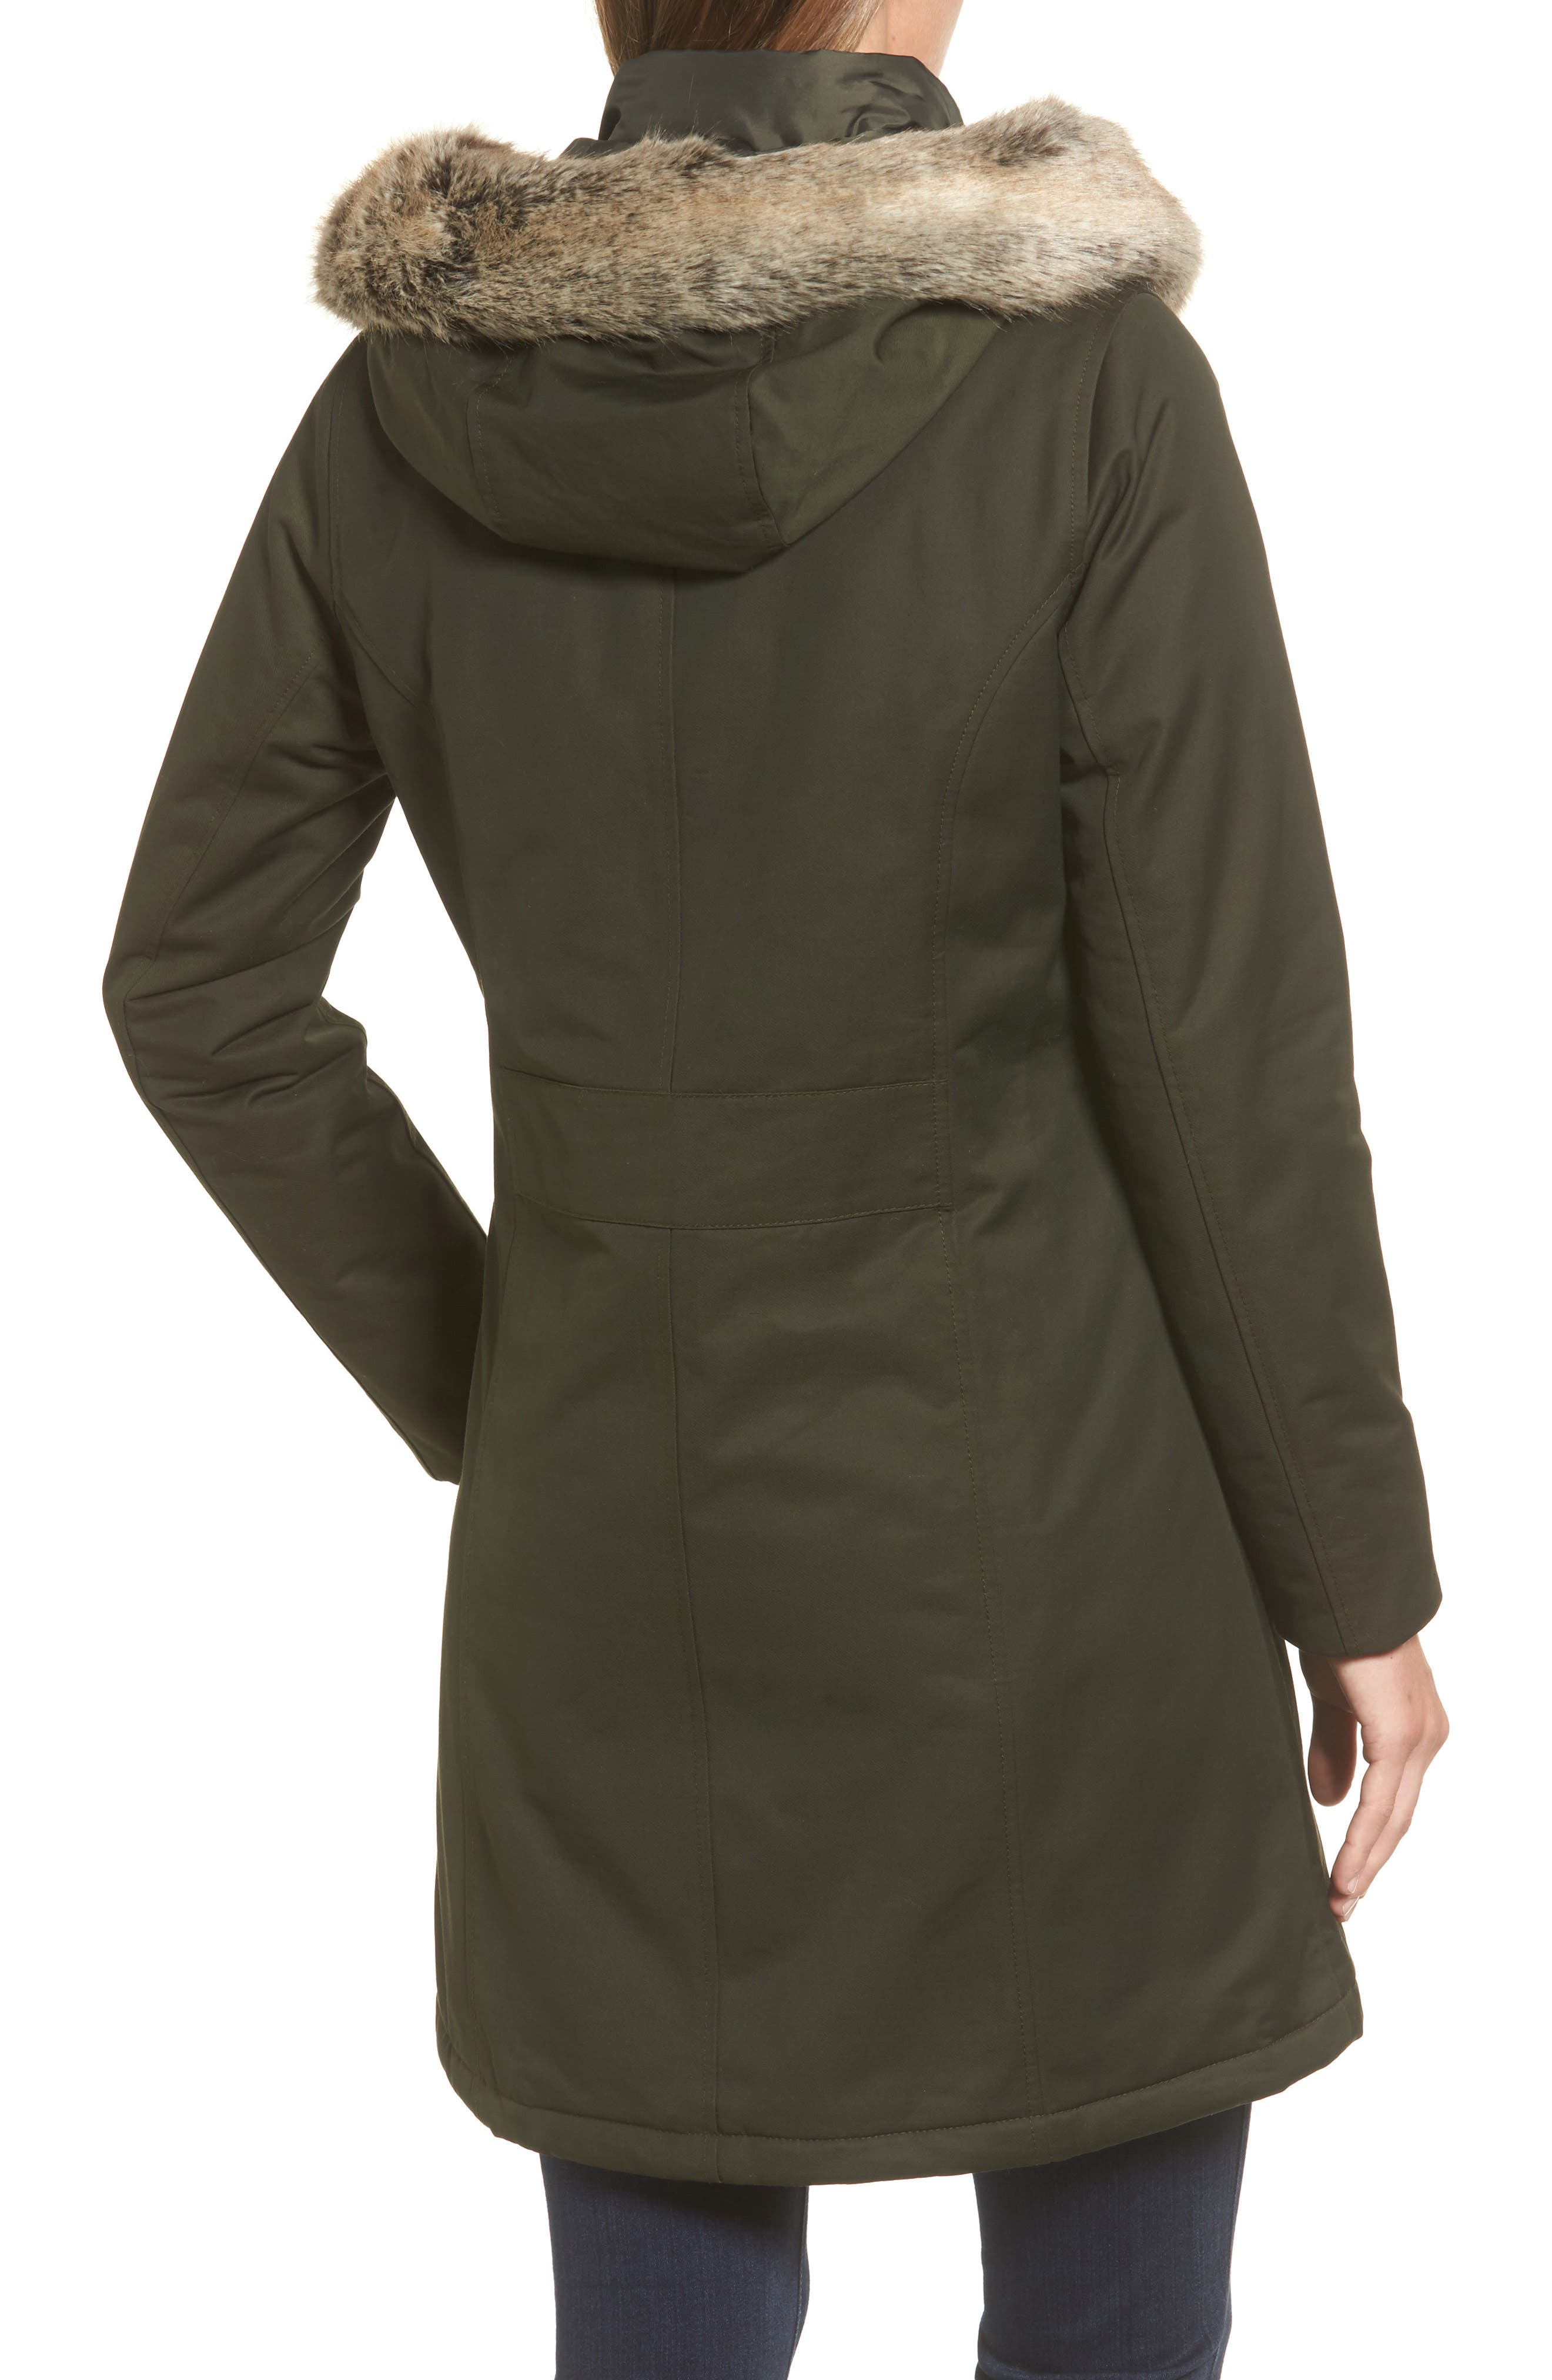 Filey Waterproof Hooded Jacket with Faux Fur Trim,                             Alternate thumbnail 2, color,                             302